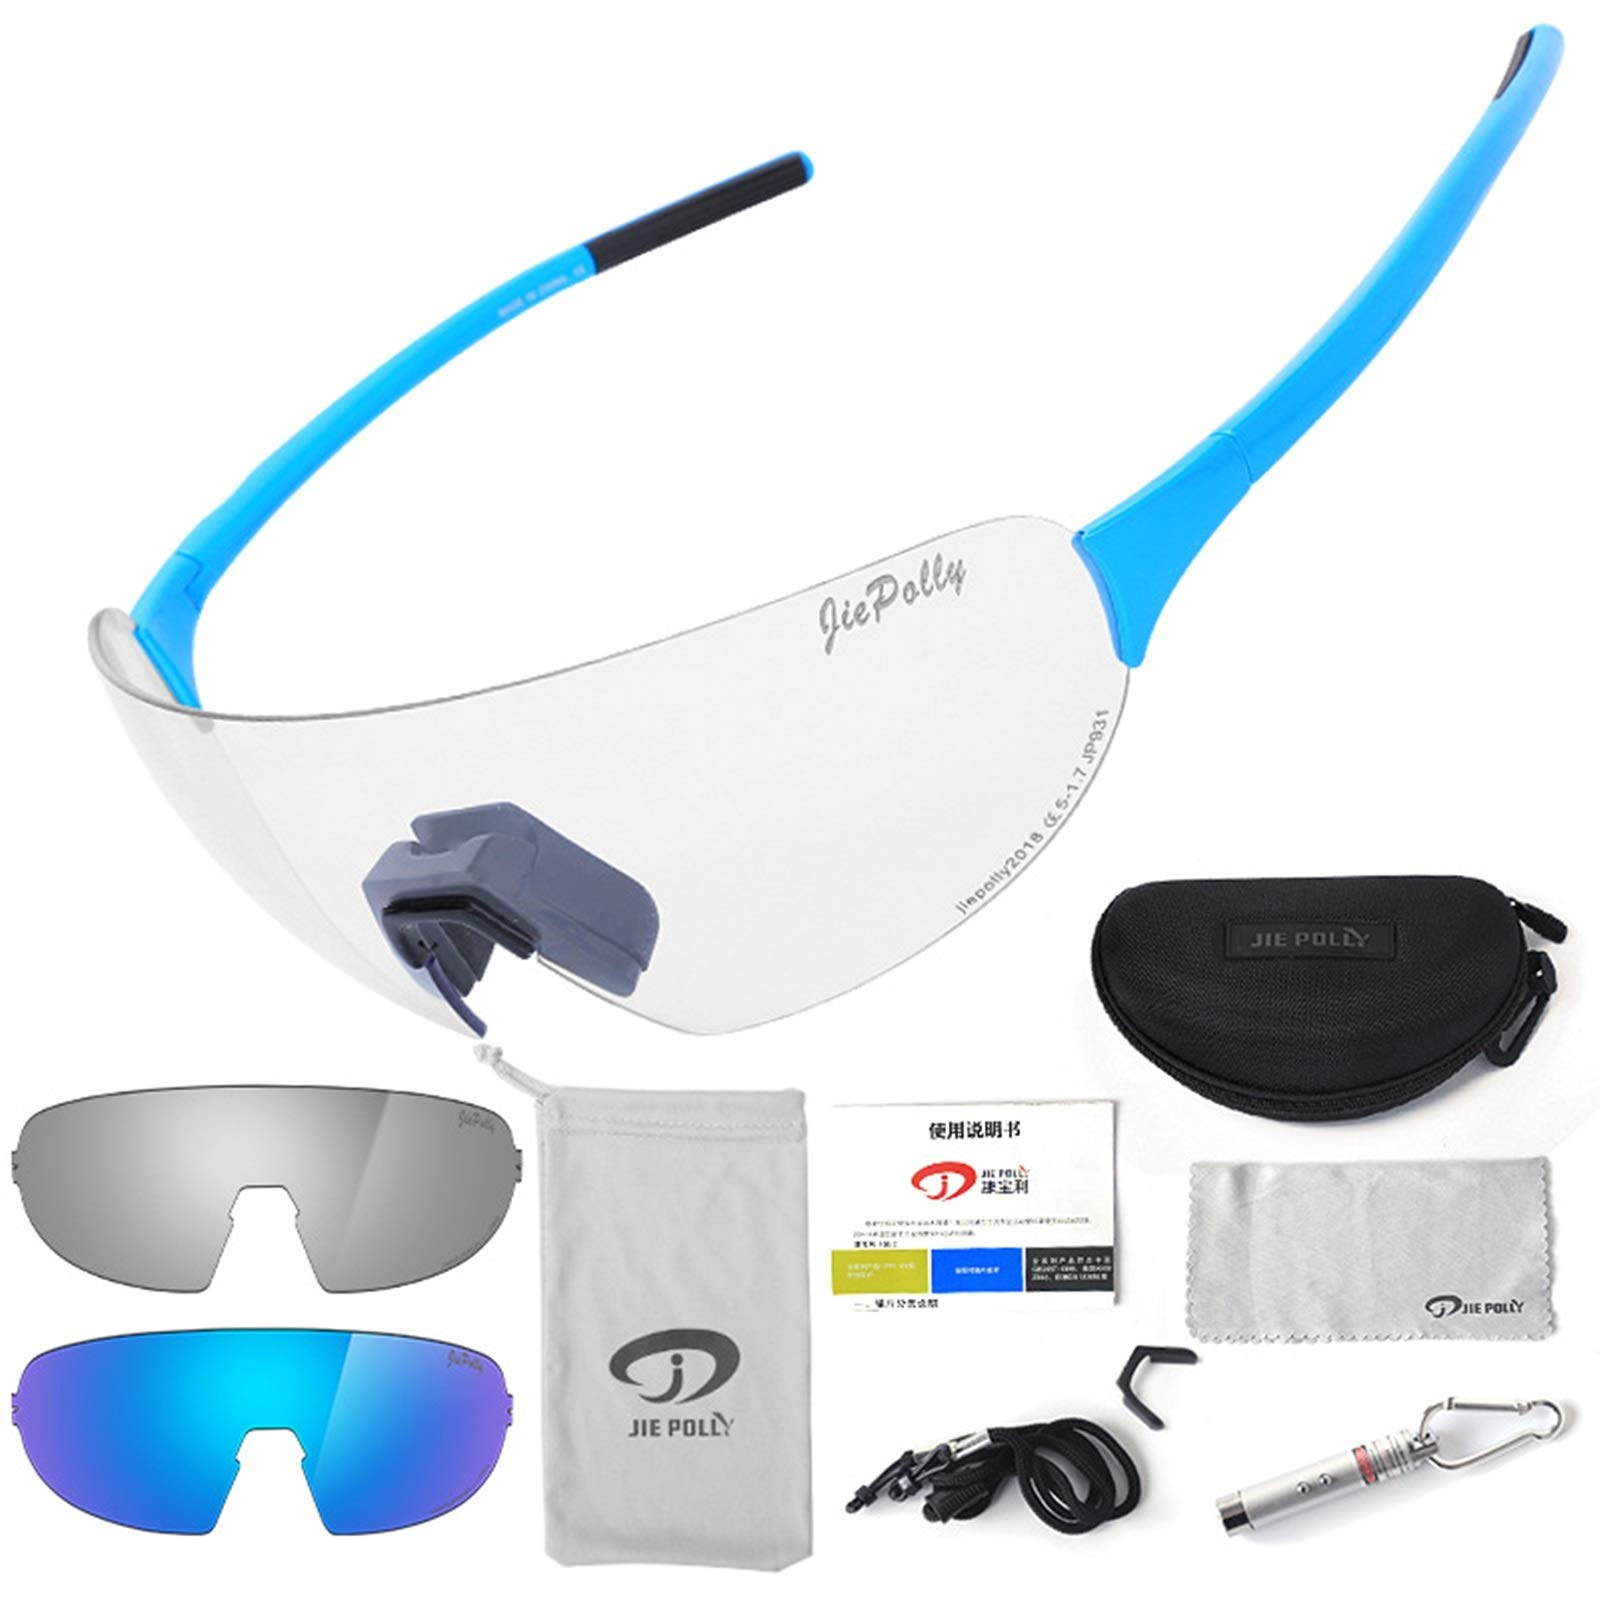 Adisaer Motocross Goggles Outdoor Sports Riding Color-Changing Glasses Men and Women Running Fishing Bicycle Windproof Polarized Glasses Blue Luxury for Adults